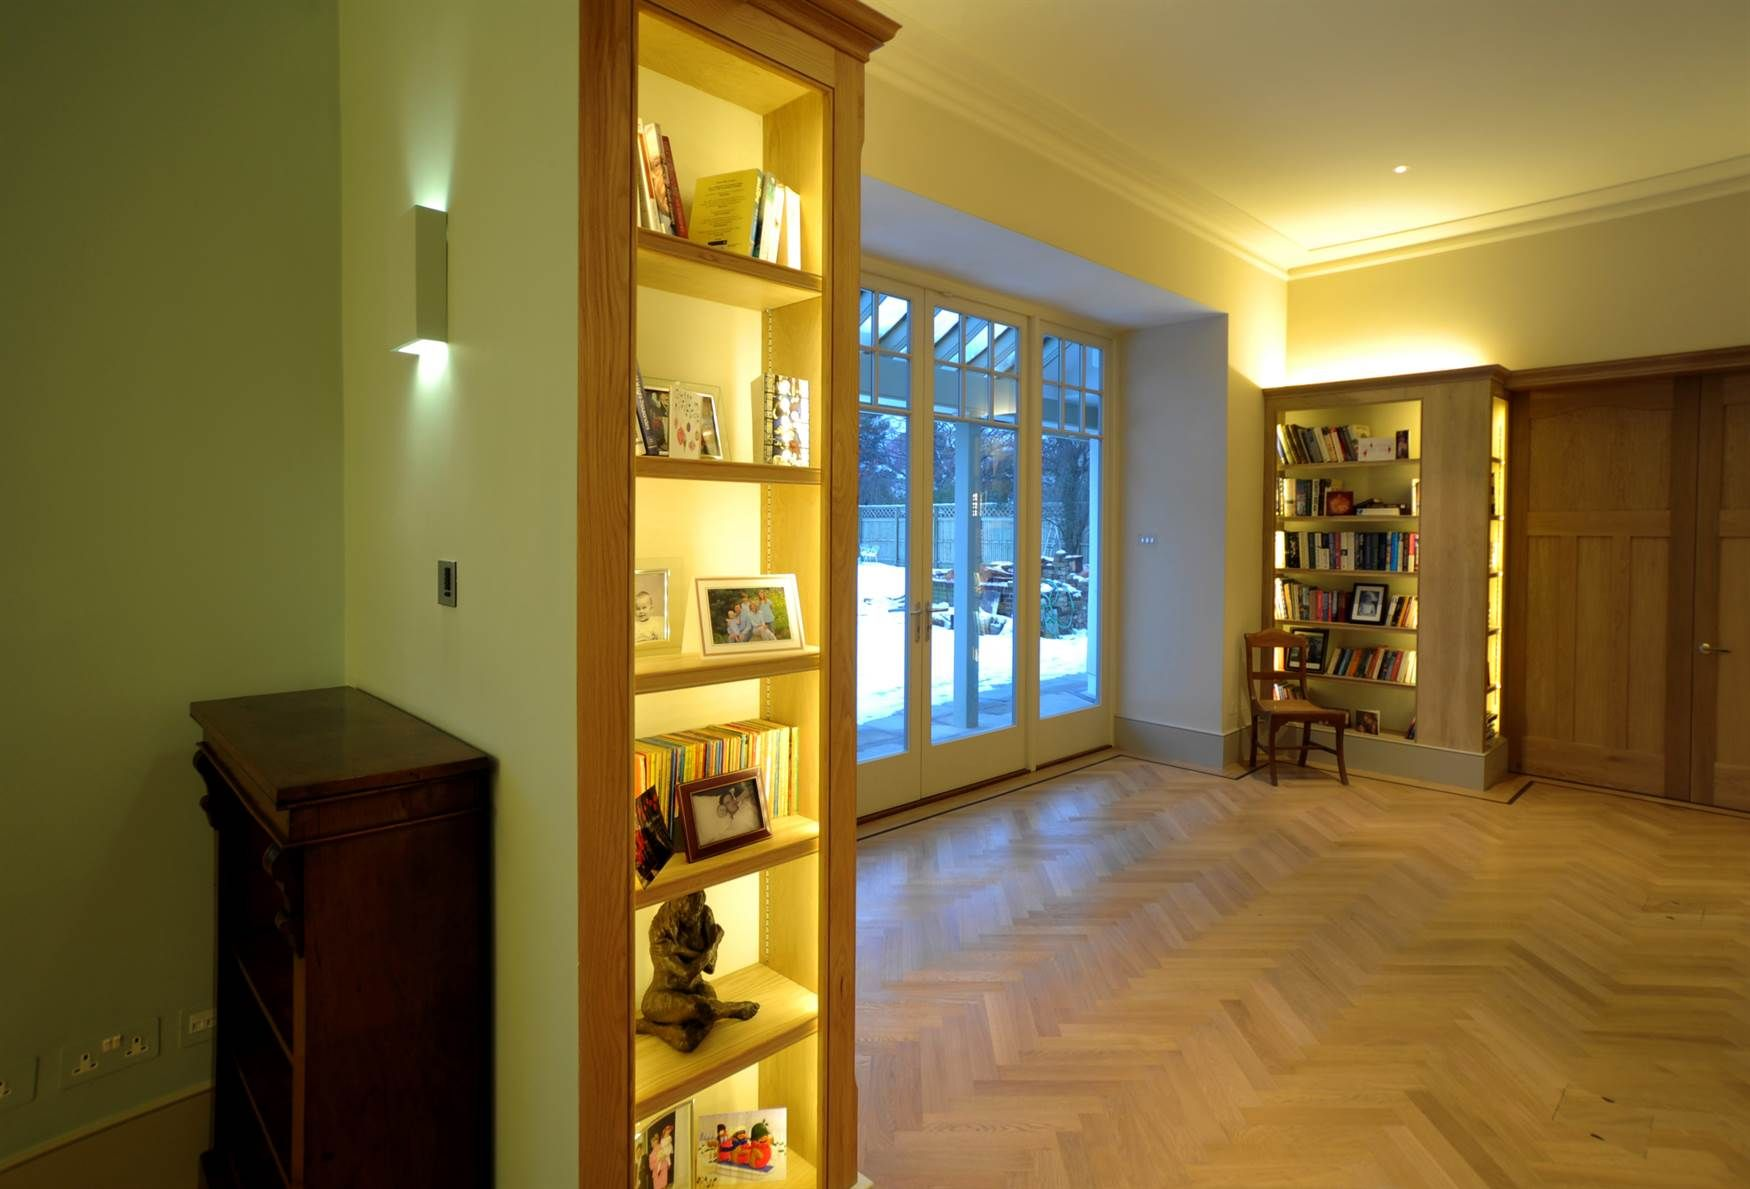 The Village LED tape in shelving and plaster wall light